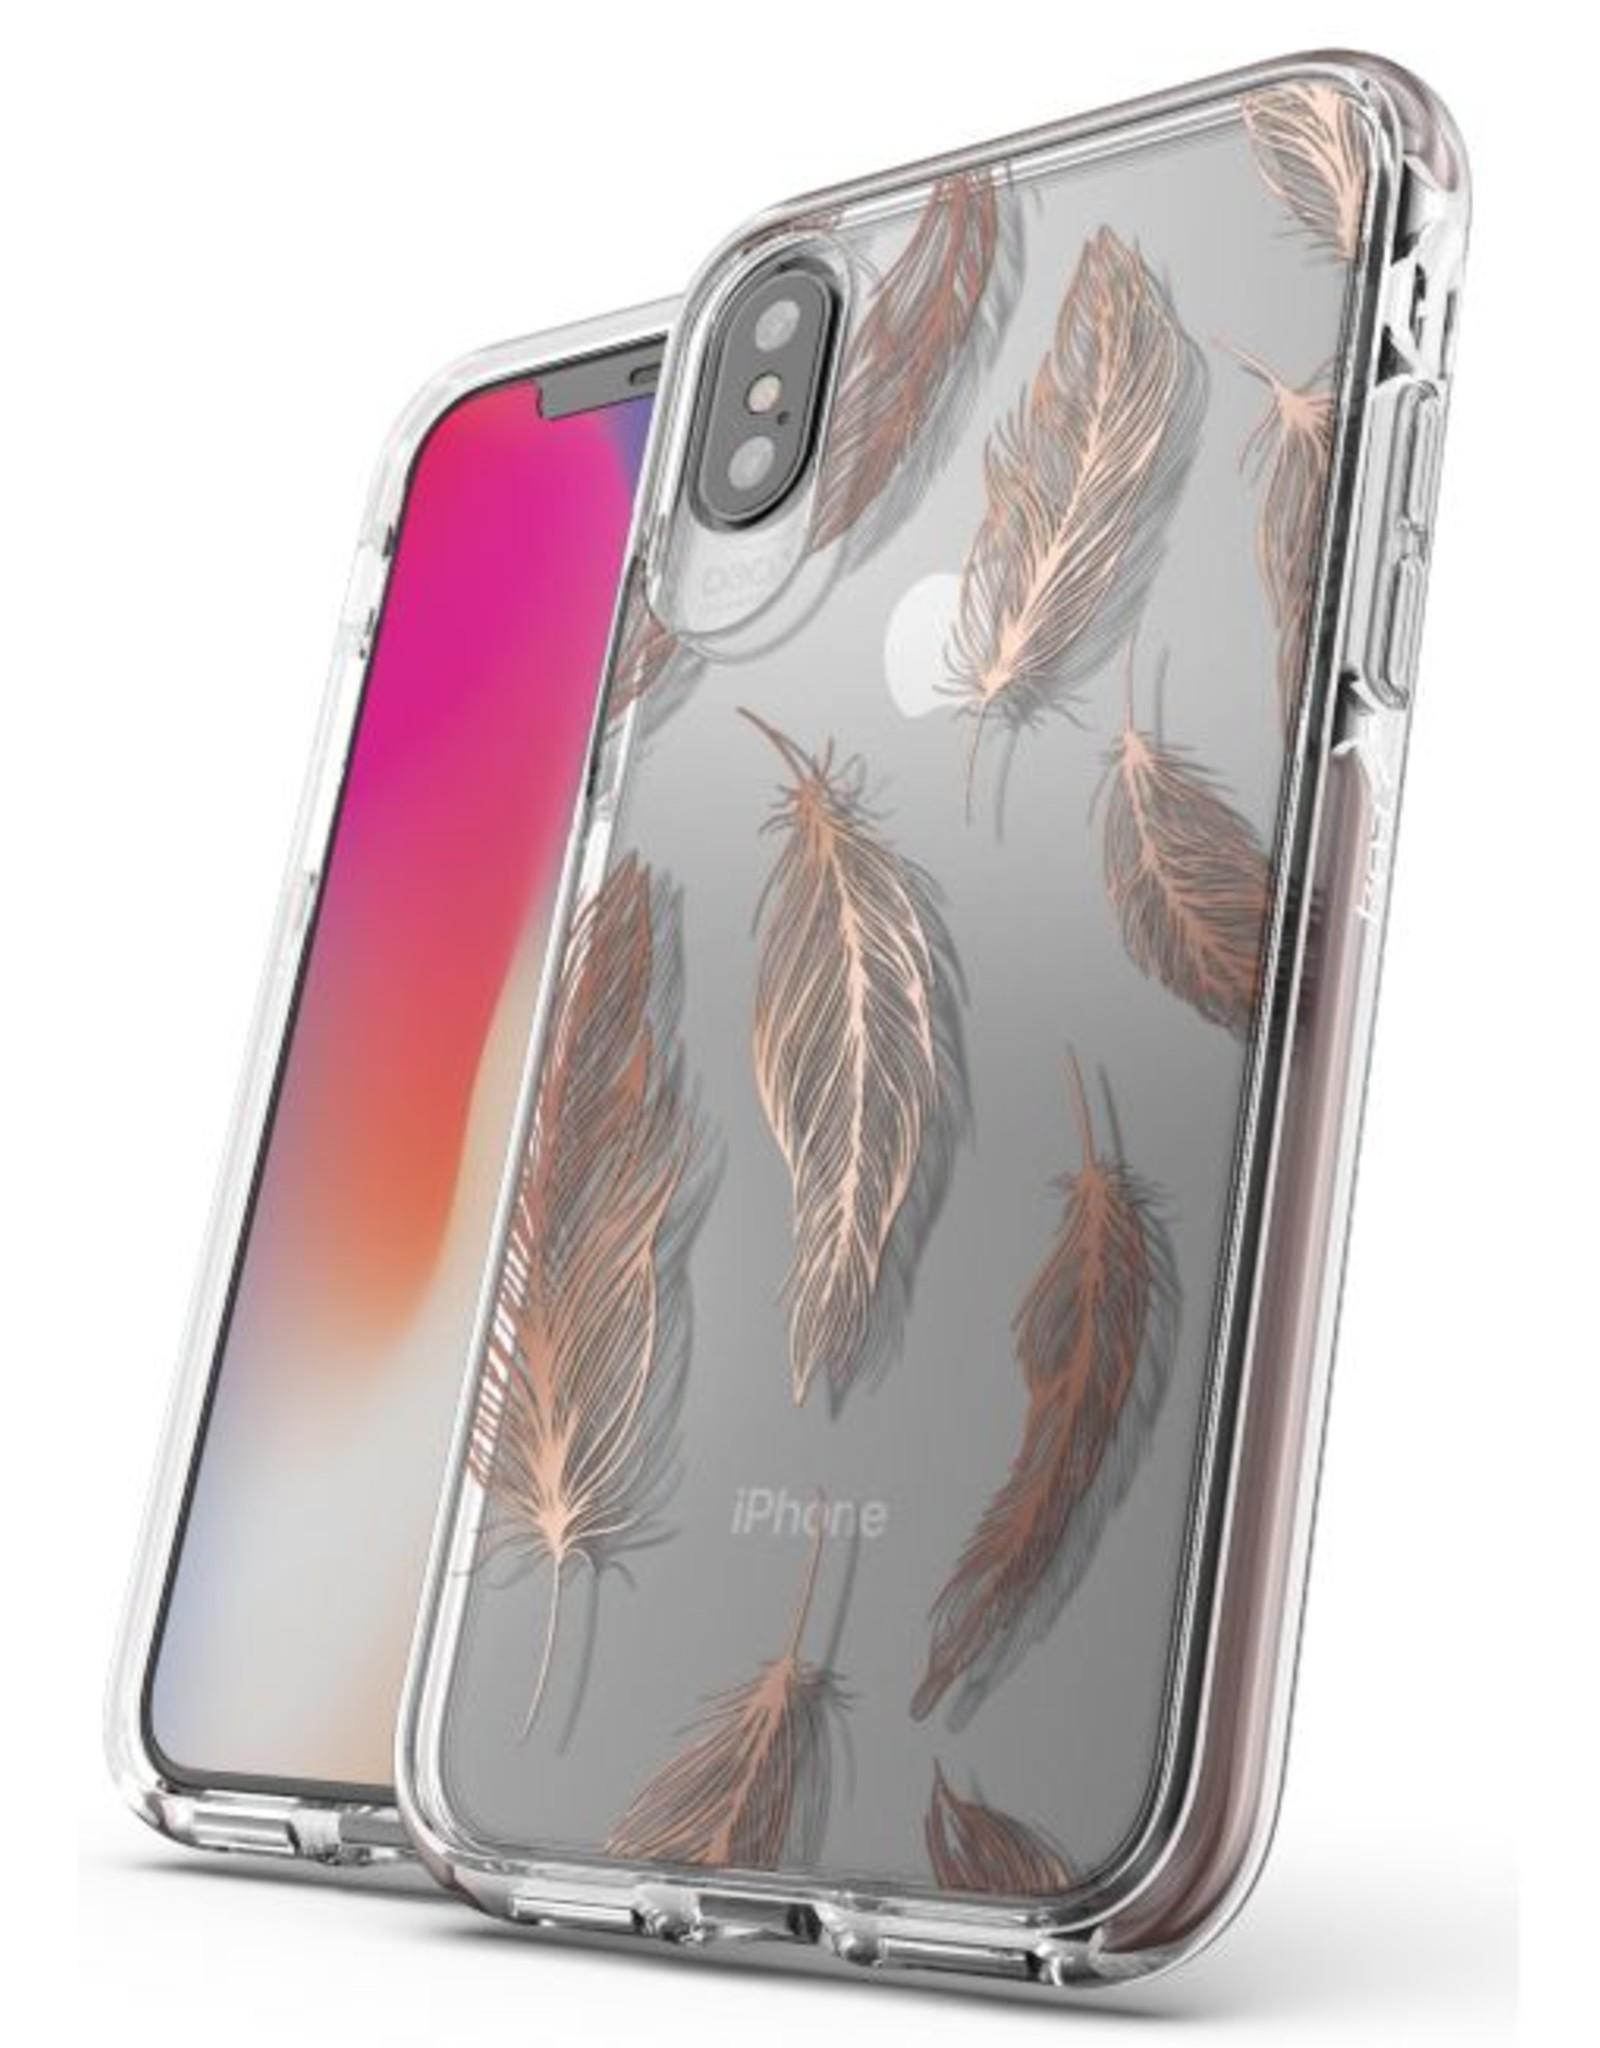 GEAR4 GEAR4 | iPhone X D3O Feathers Victoria Case | 15-02912